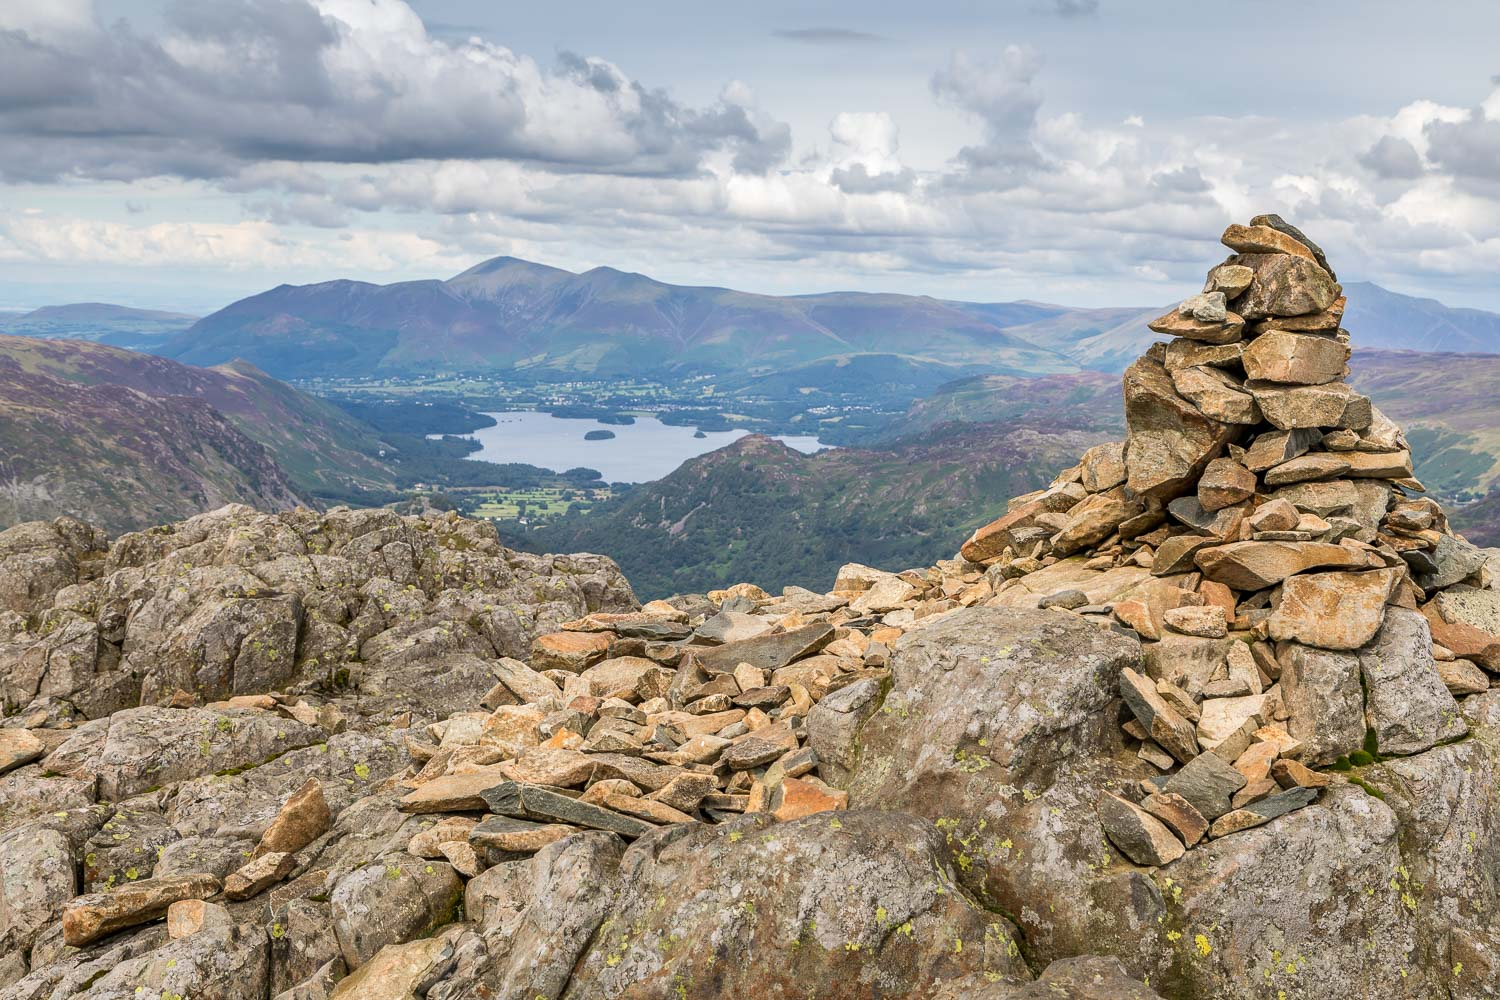 Glaramara summit cairn